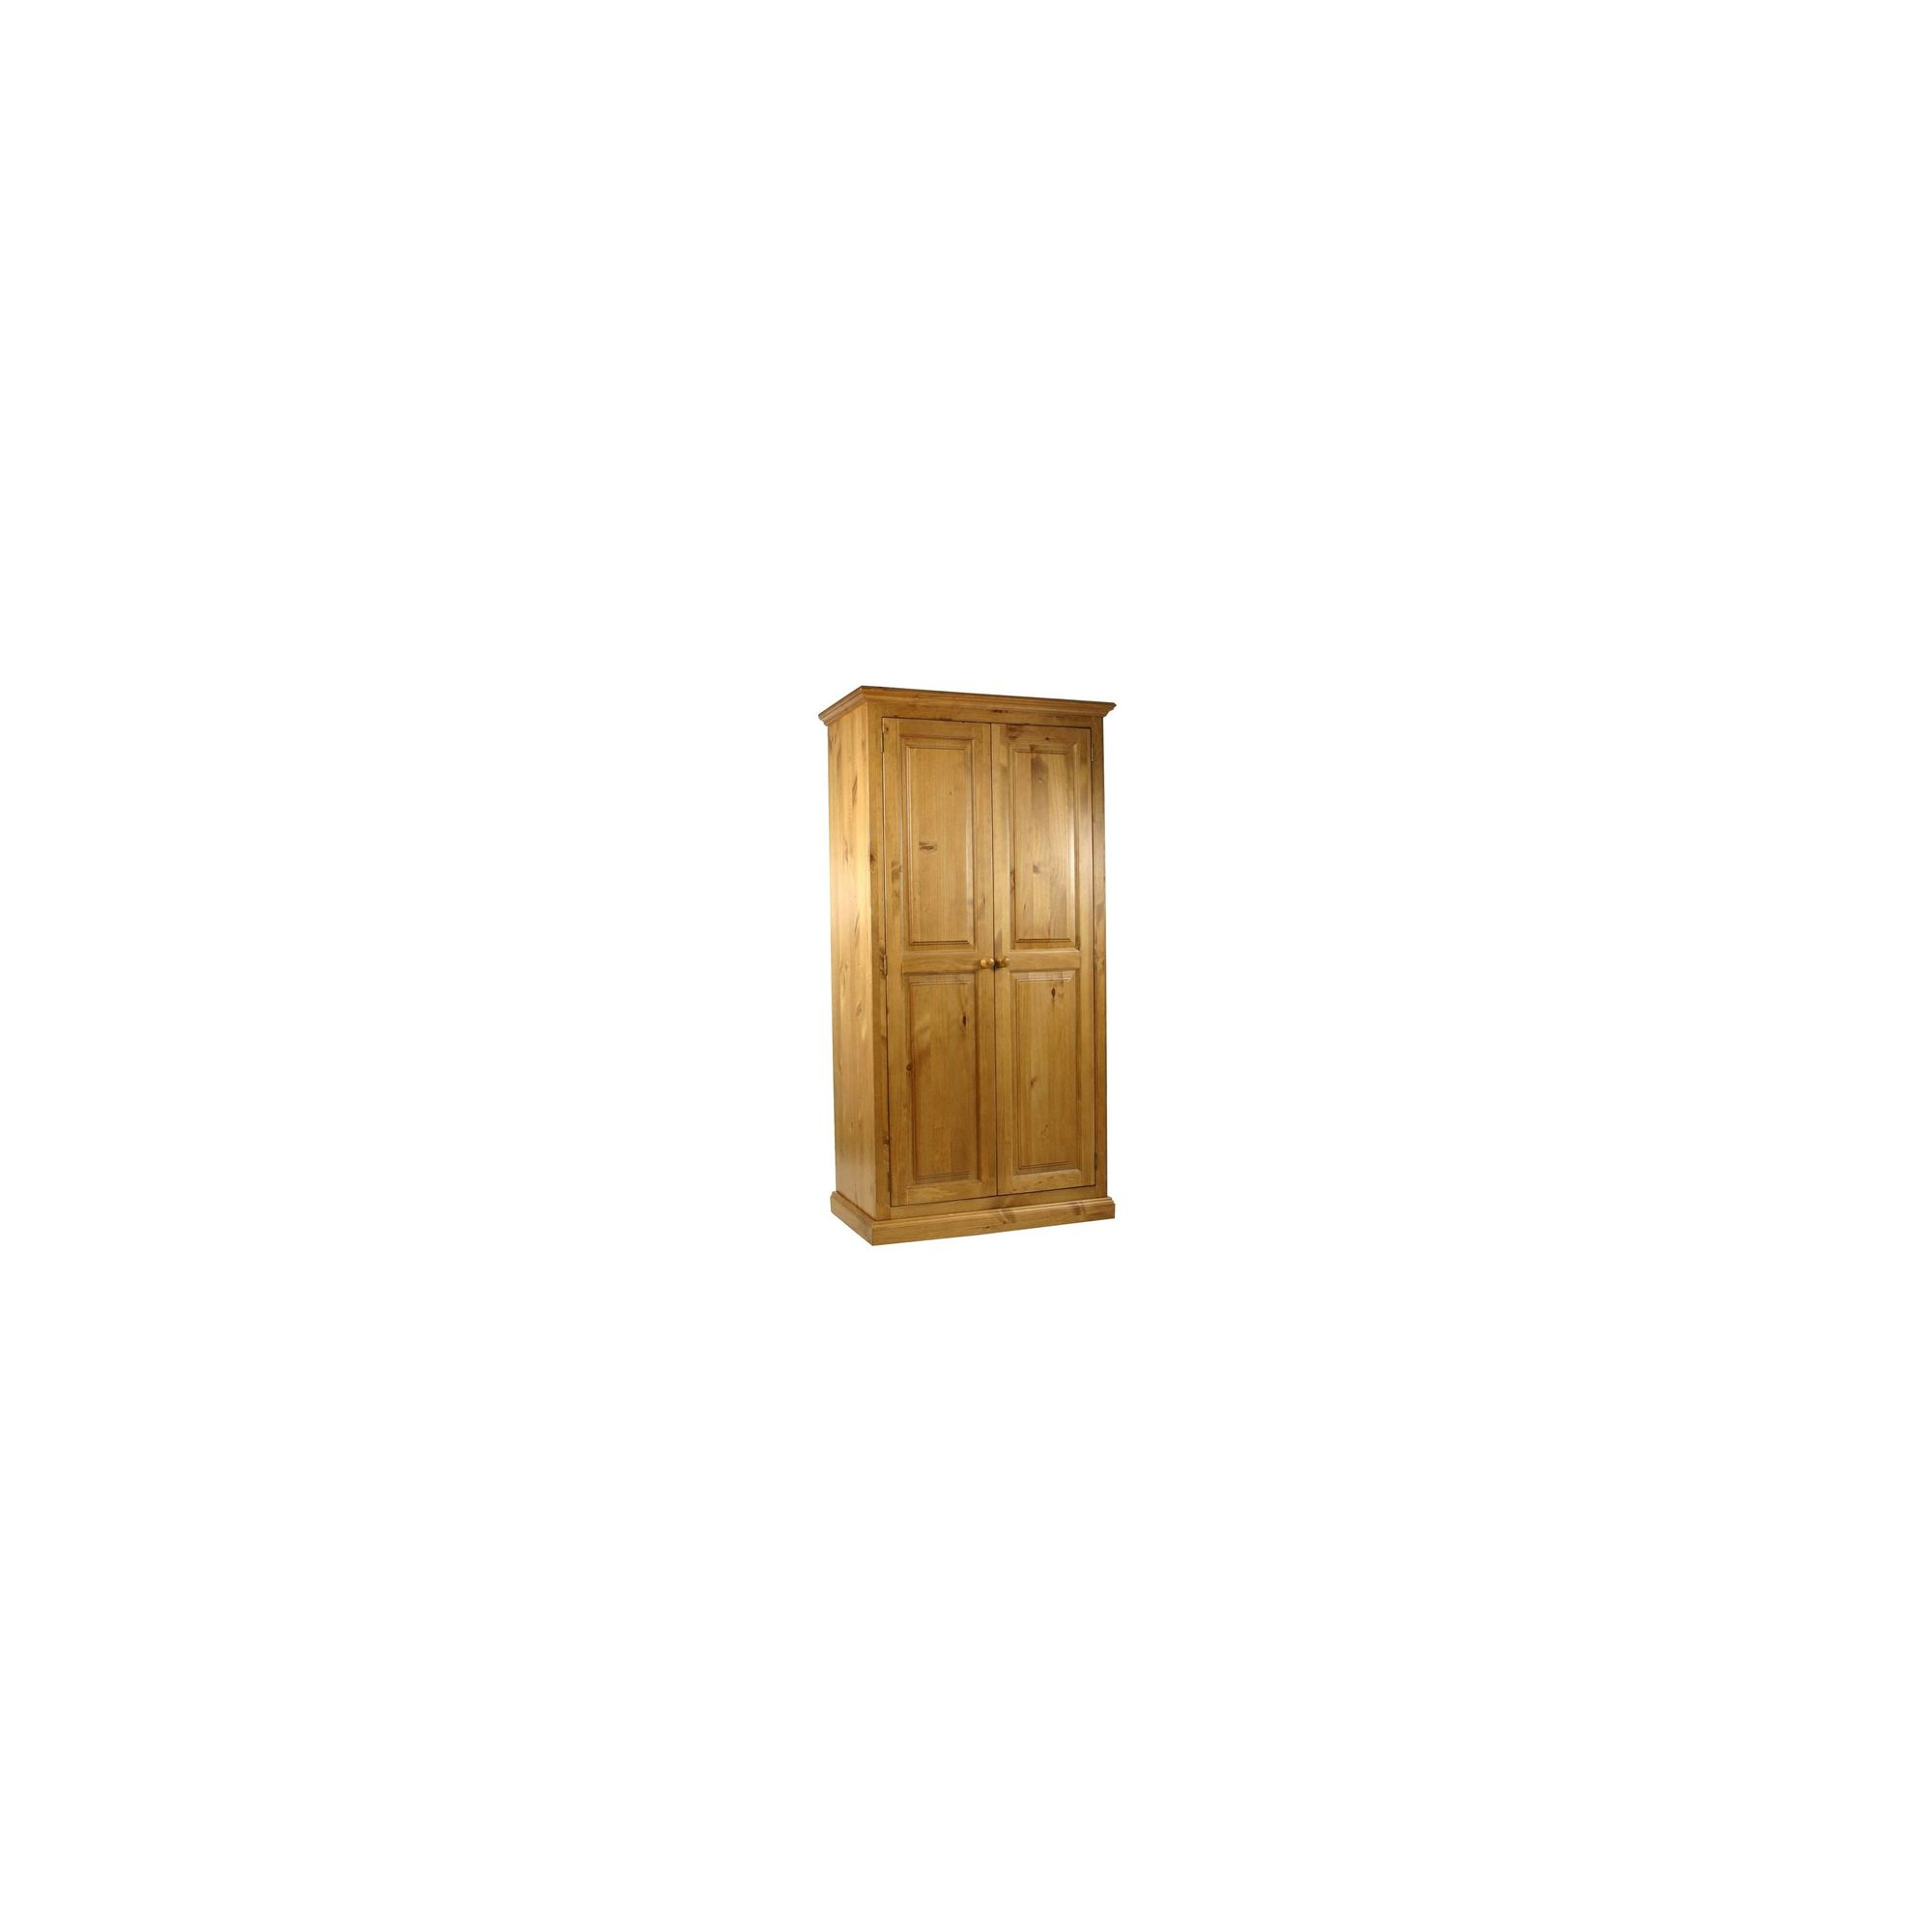 Kelburn Furniture Pine Full Hanging Small Wardrobe in Antique Wax Lacquer at Tescos Direct